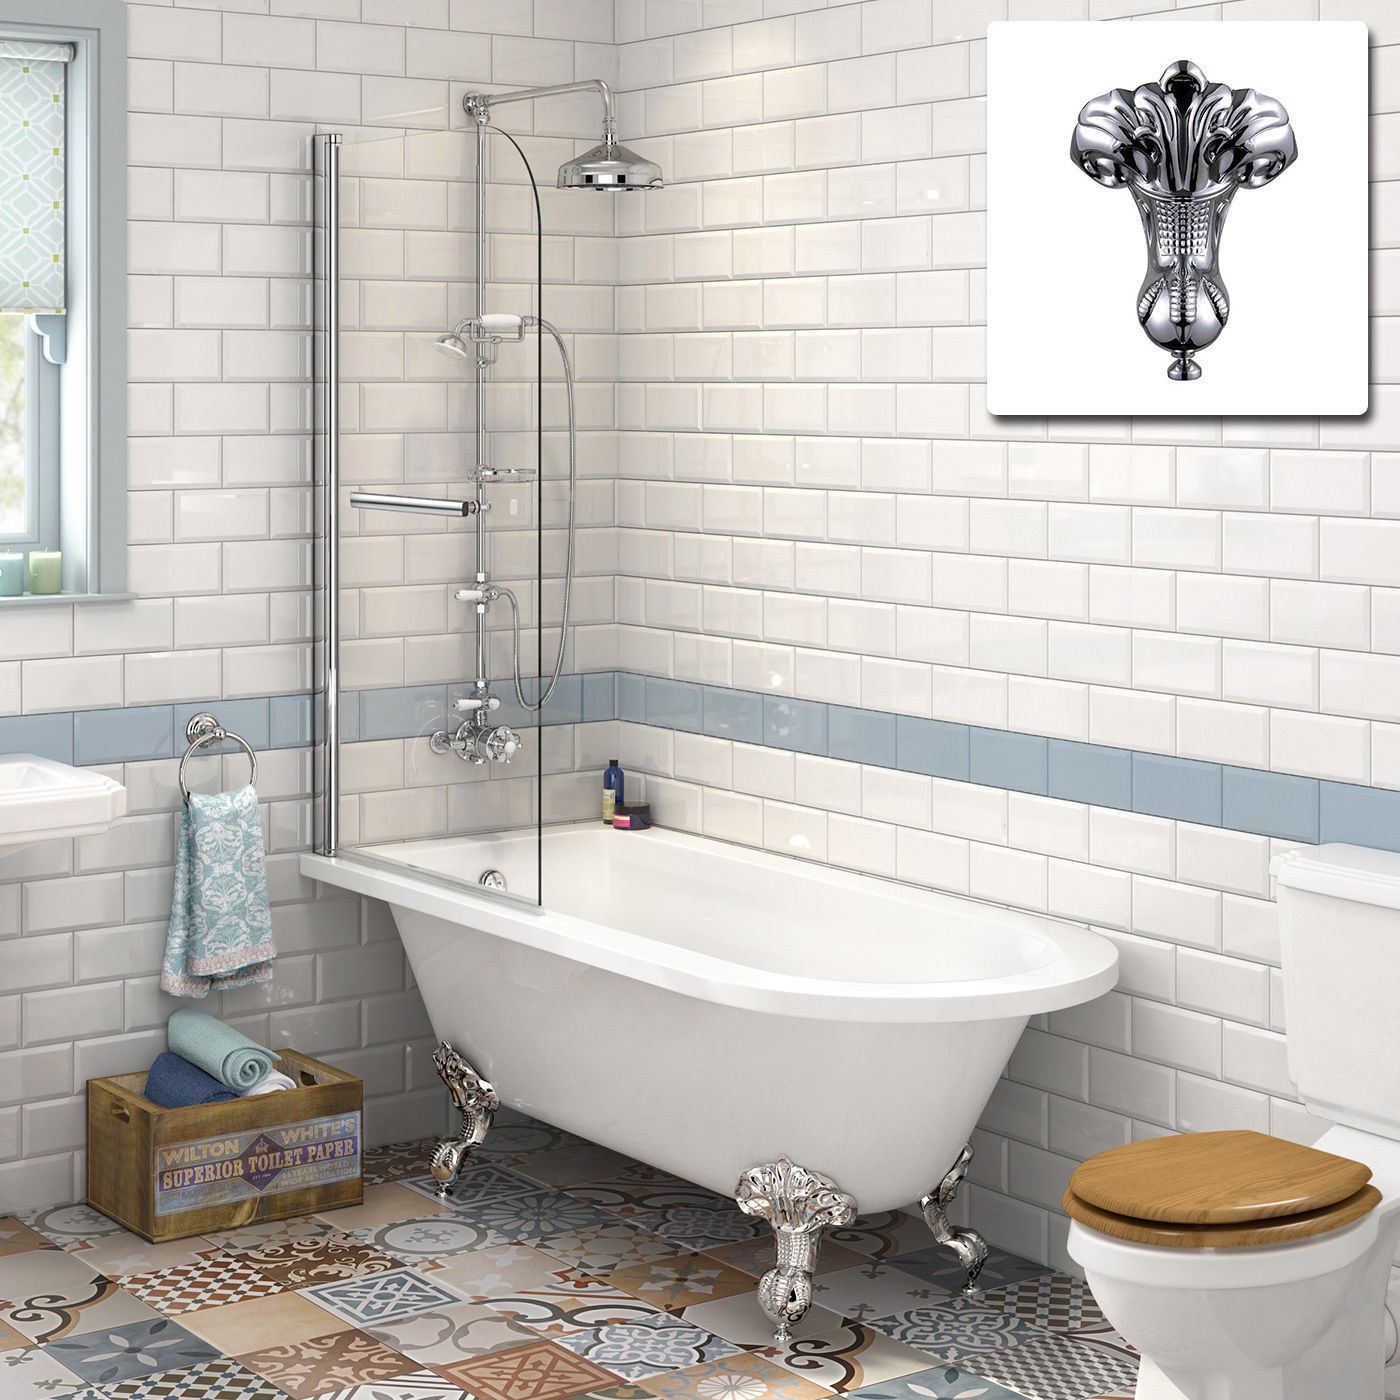 Our Stylishly Designed Traditional Baths Comes With A Clever Back To Wall Design That Allows You Maximise On Space And Provides Added